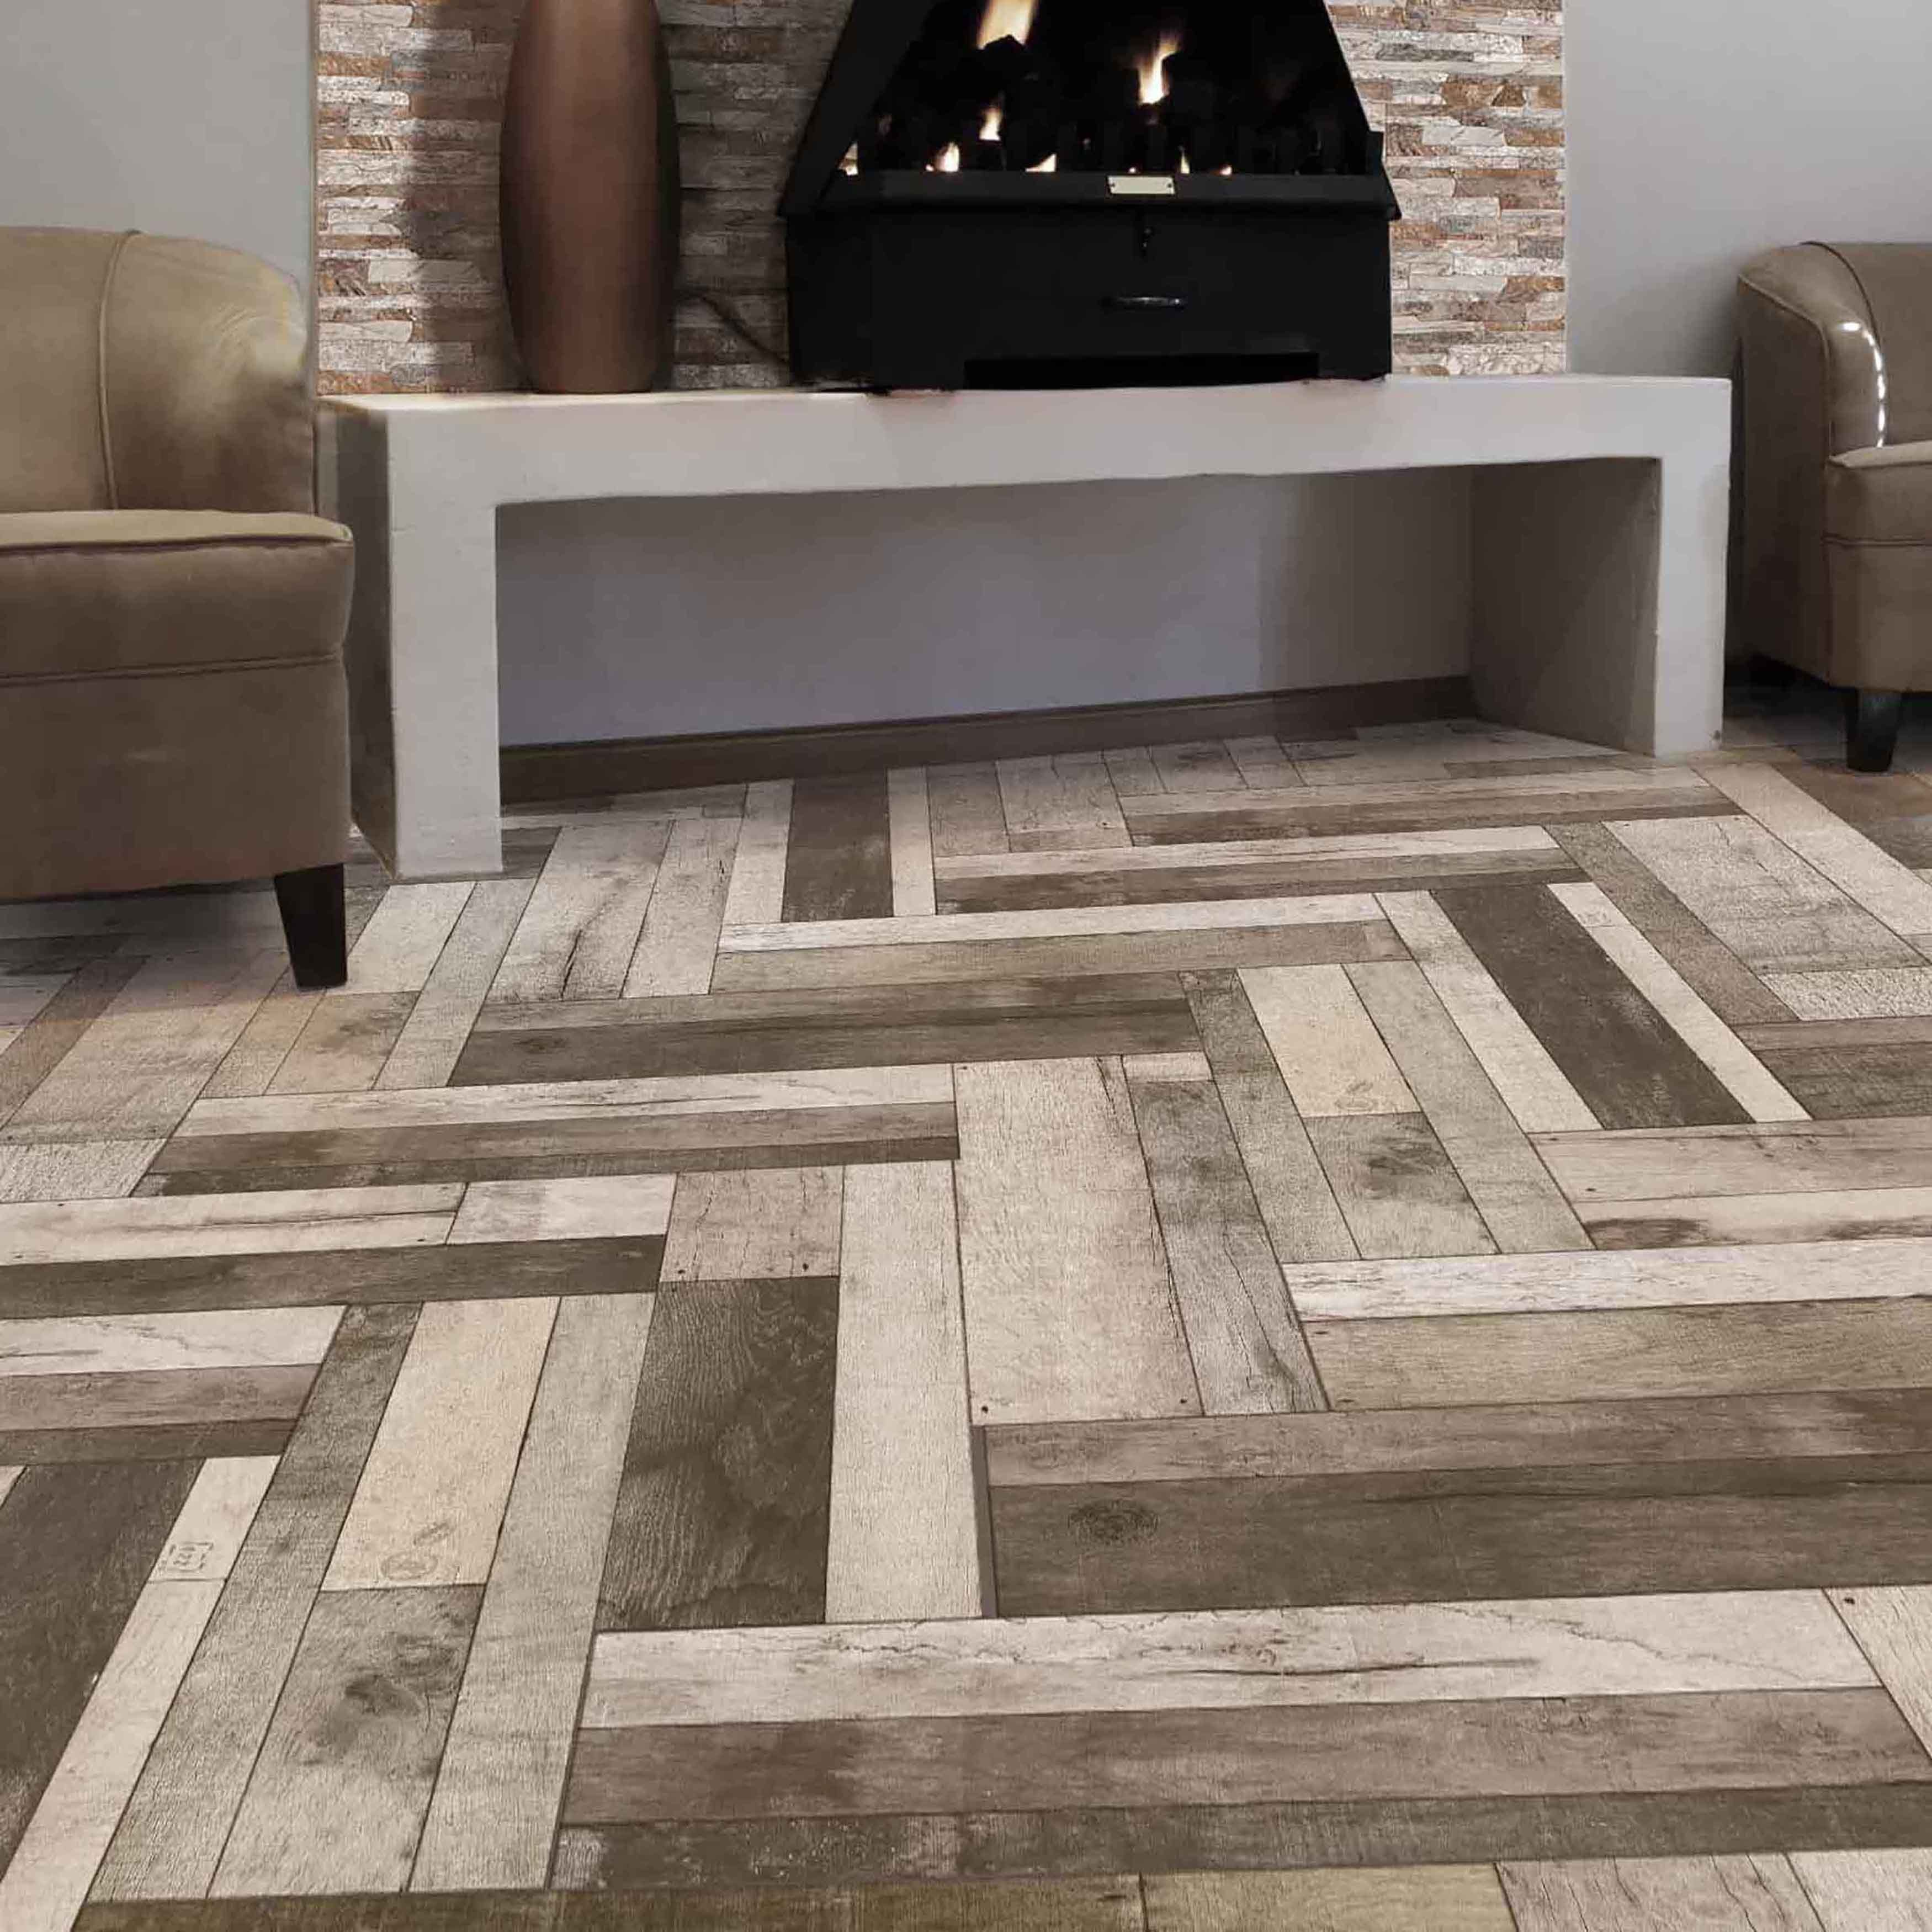 SomerTile 7.875x23.625-inch Bosque Gris Ceramic Floor and Wall ...